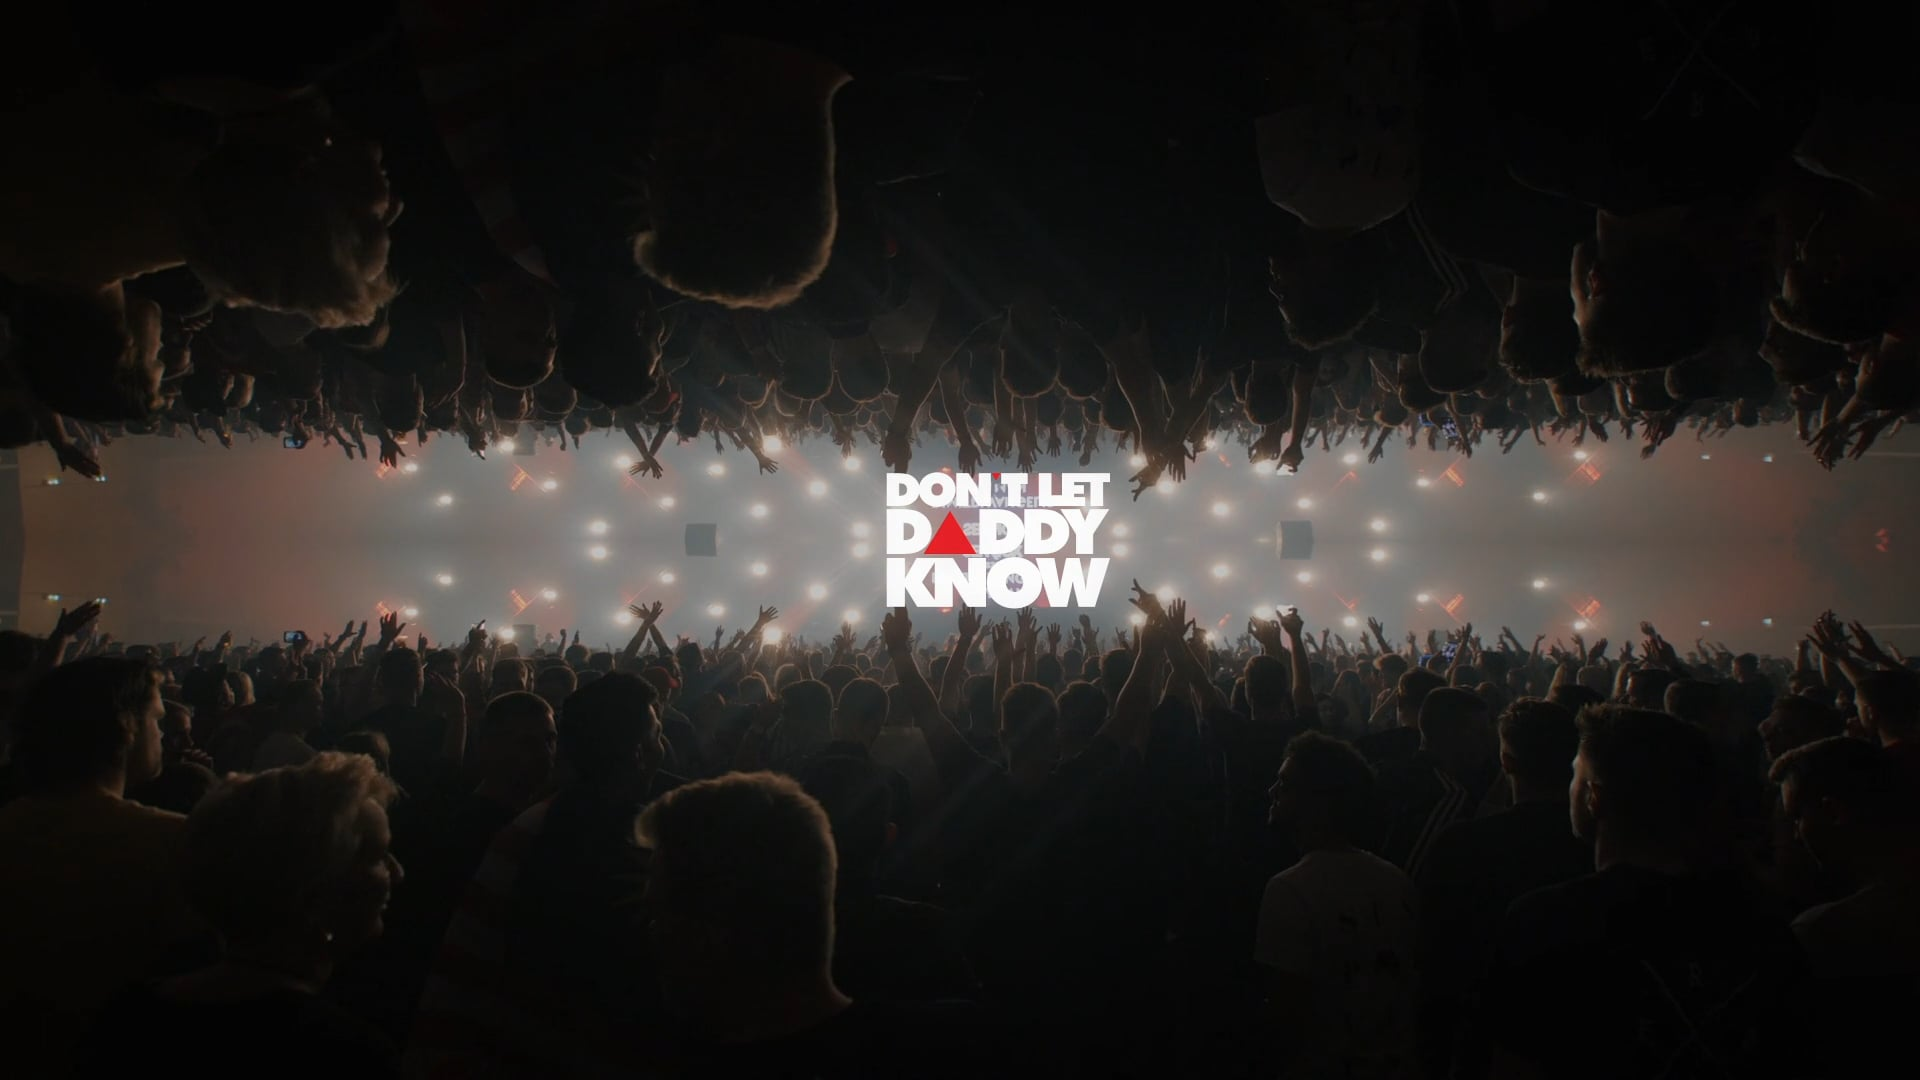 Don't Let Daddy Know 2020 Amsterdam Recap